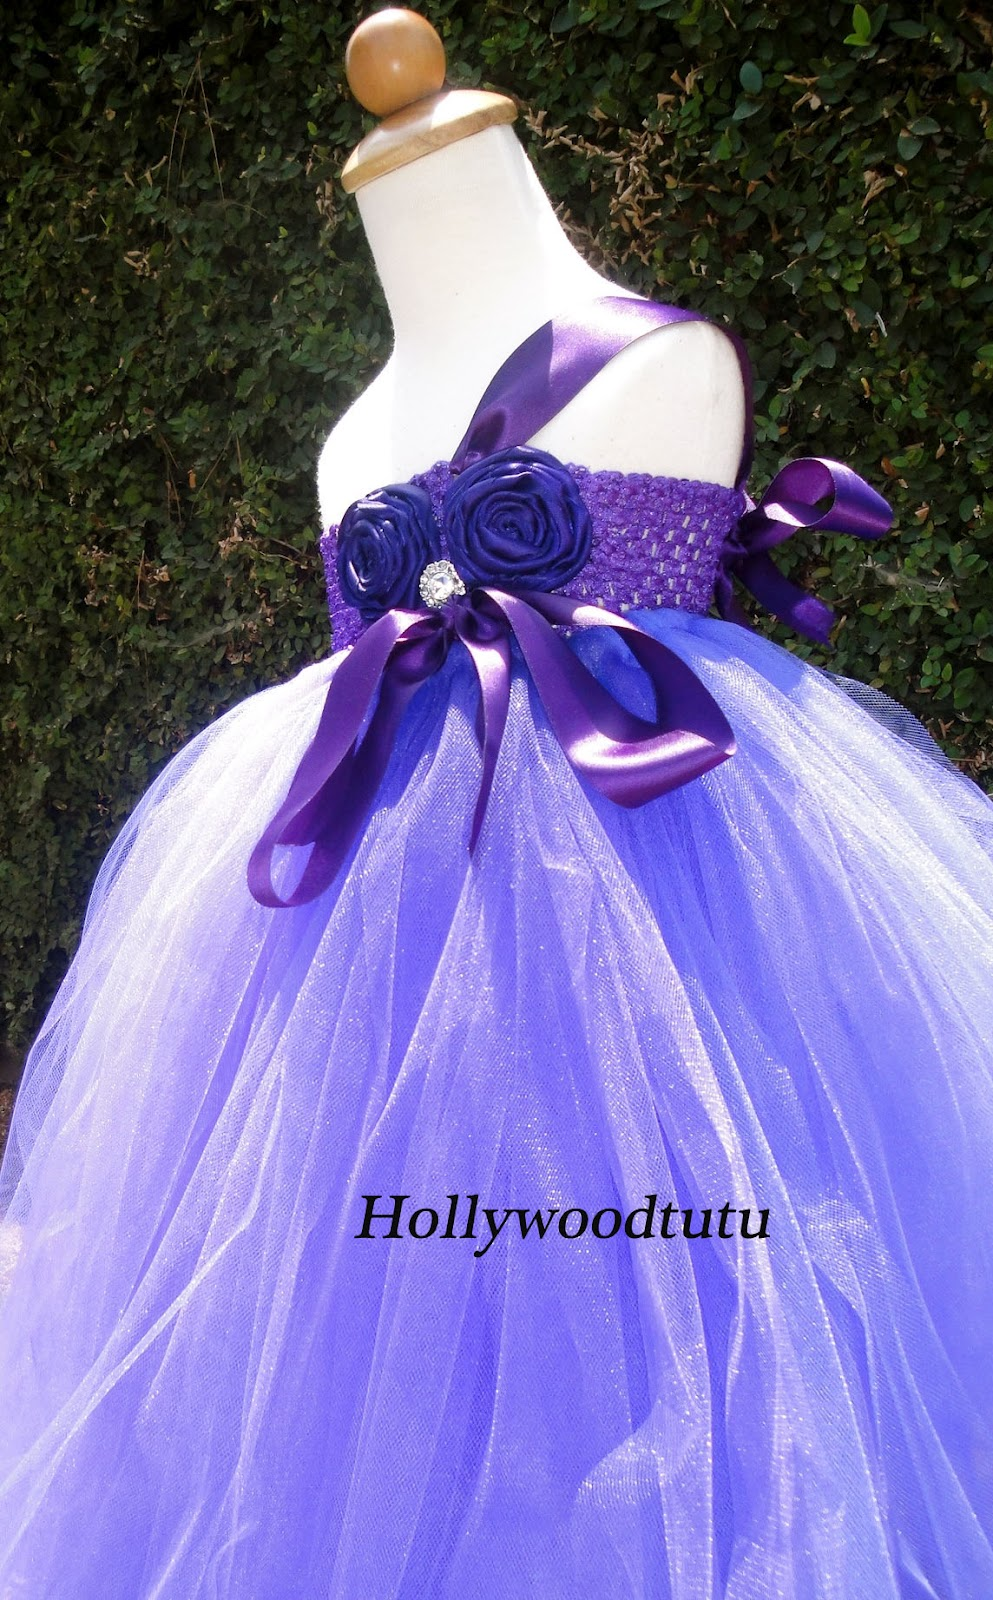 Hollywoodtutu dresses: Purple flower girl tutu dress